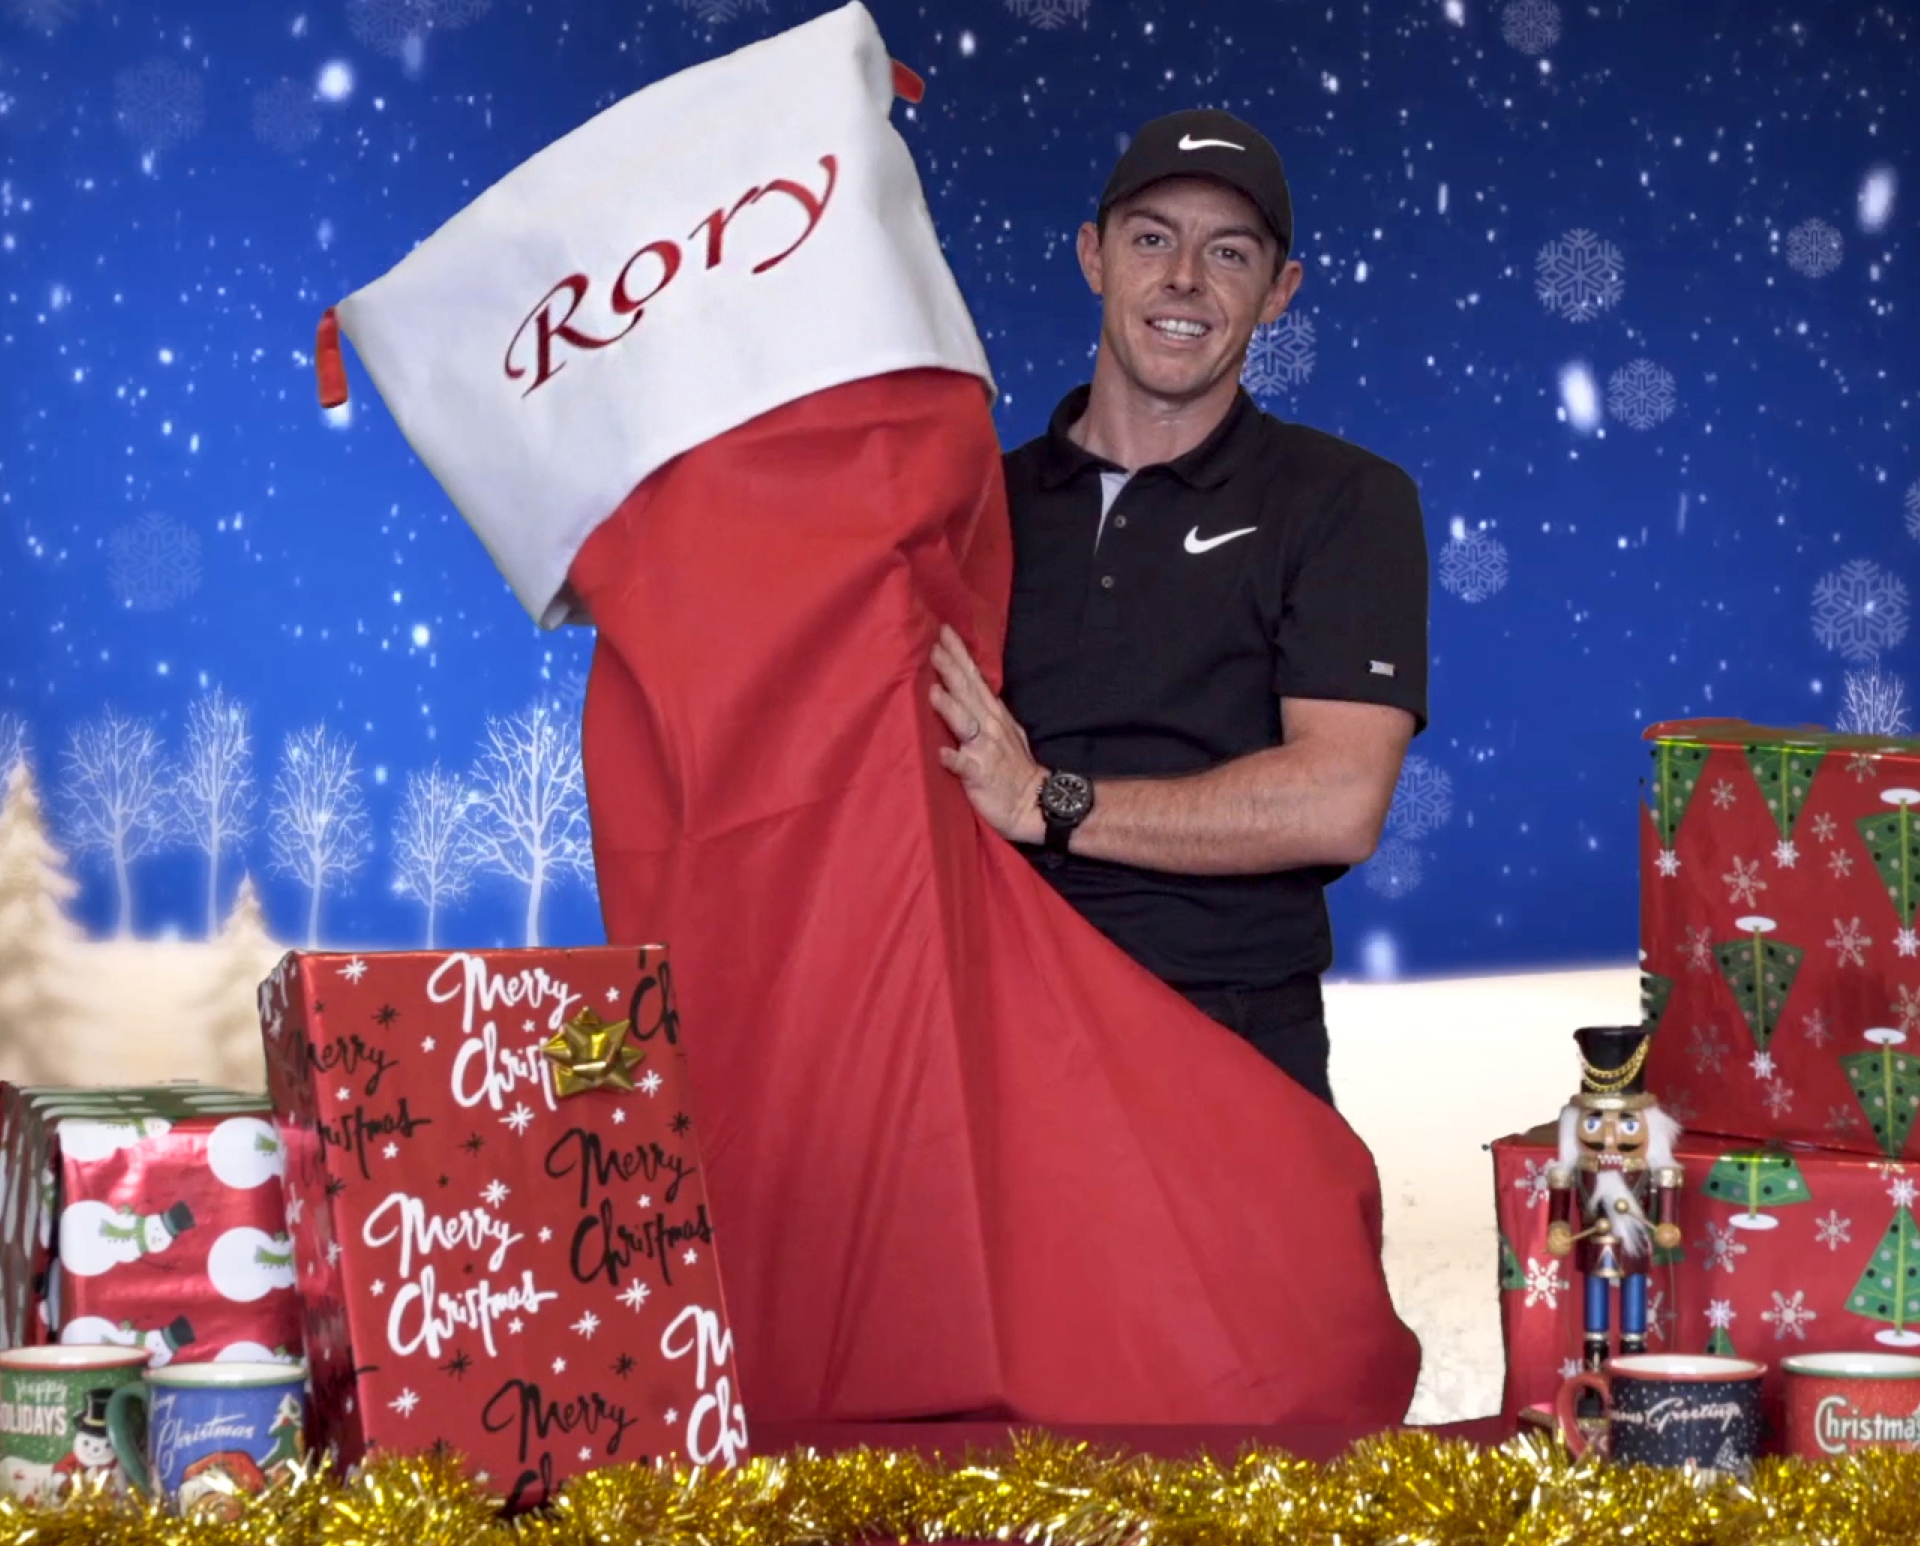 Rory McIlroy holiday stocking